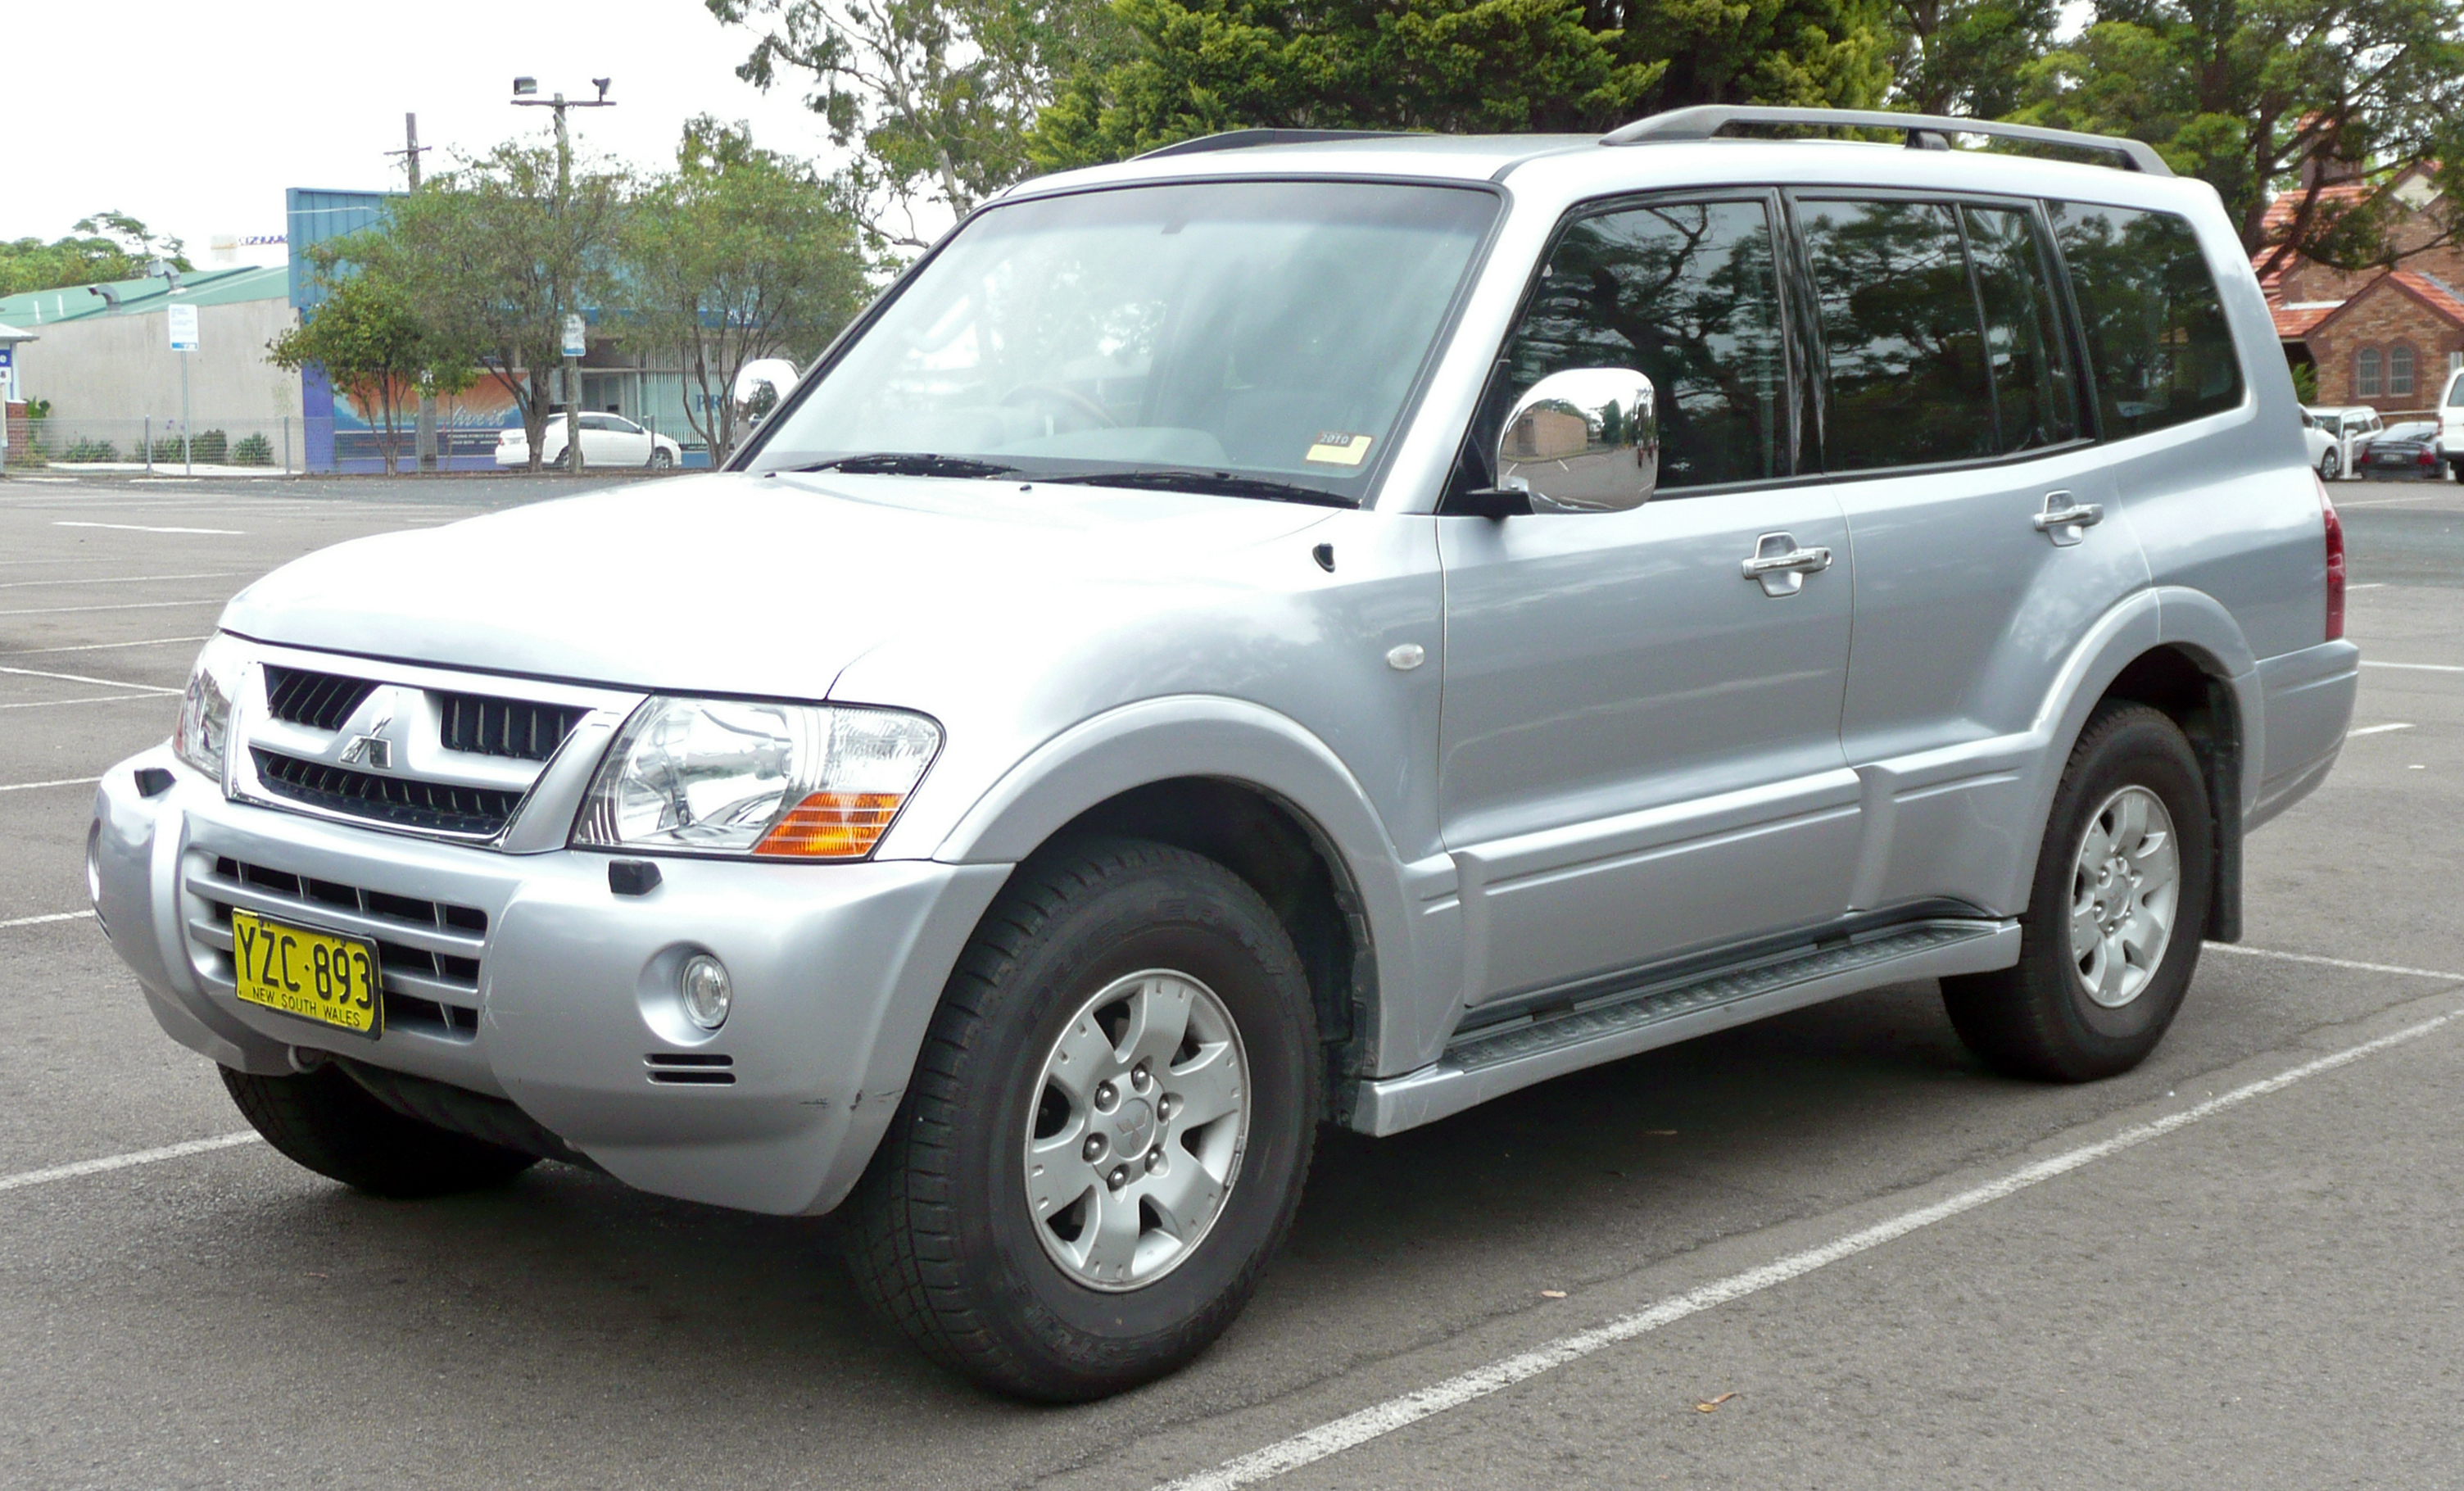 2006 Mitsubishi Pajero 3.2 DI-D related infomation,specifications - WeiLi Automotive Network